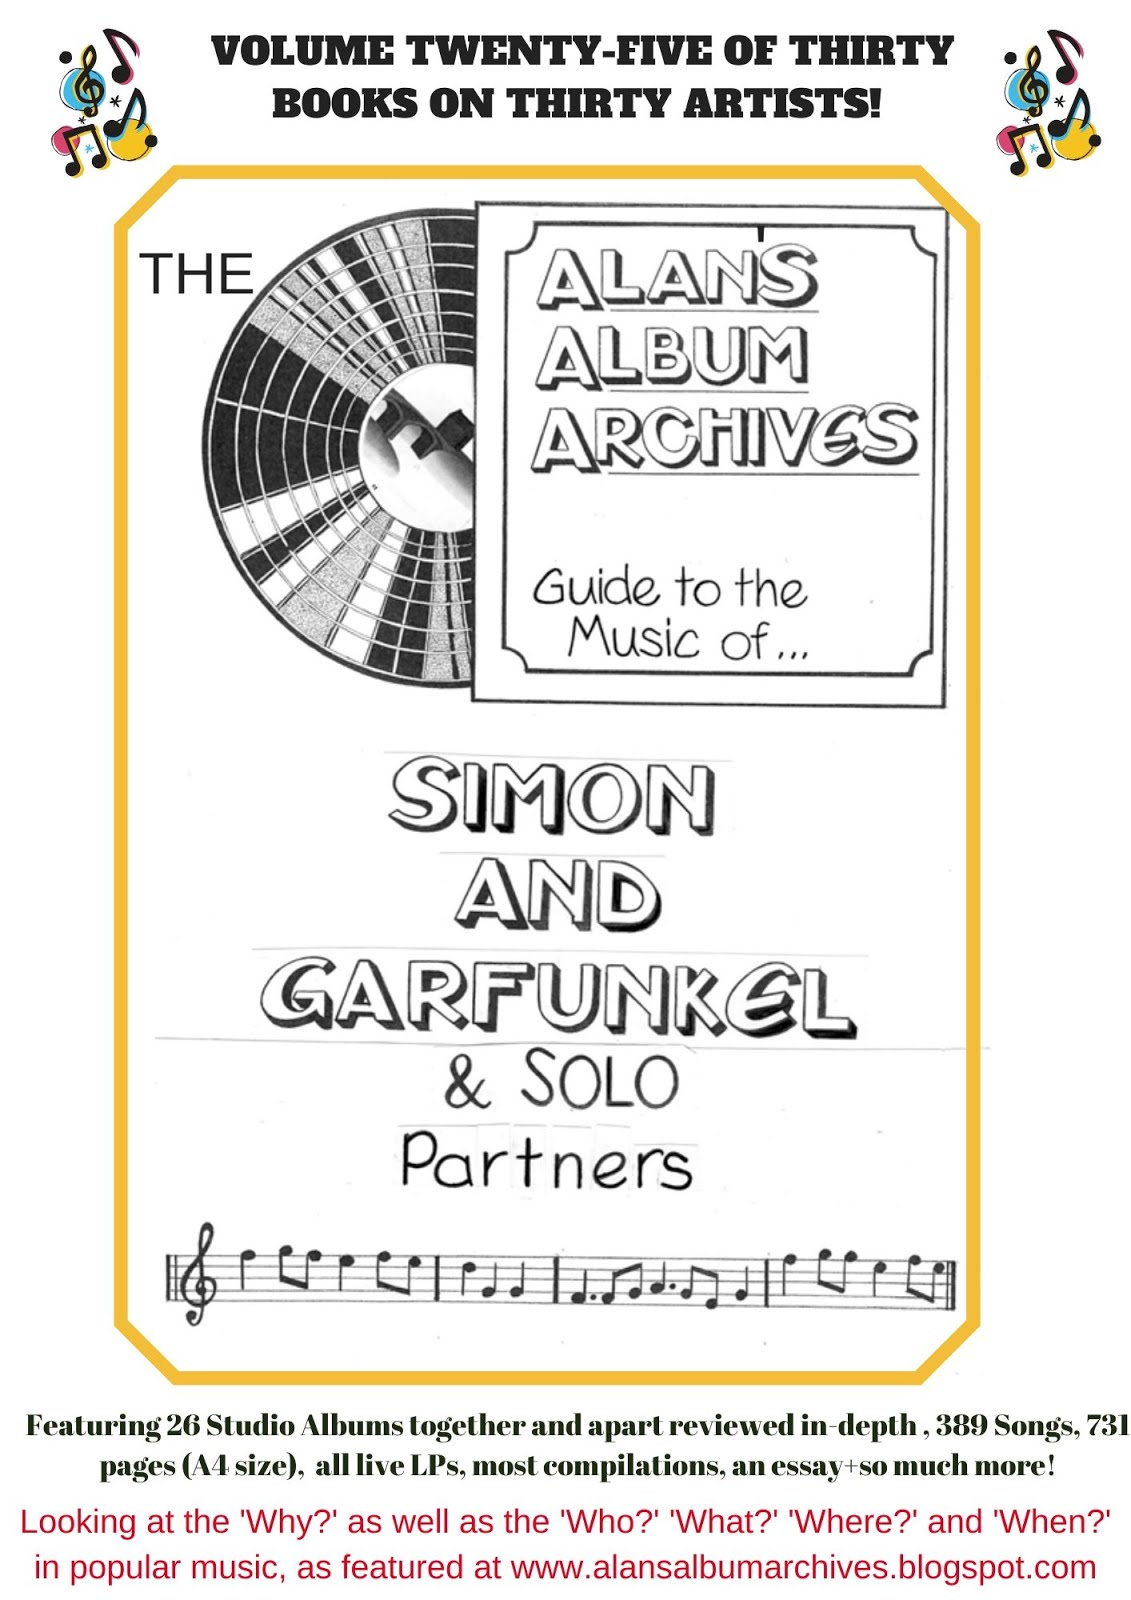 'Patterns - The Alan's Album Archives Guide To The Music Of...Simon and Garfunkel'